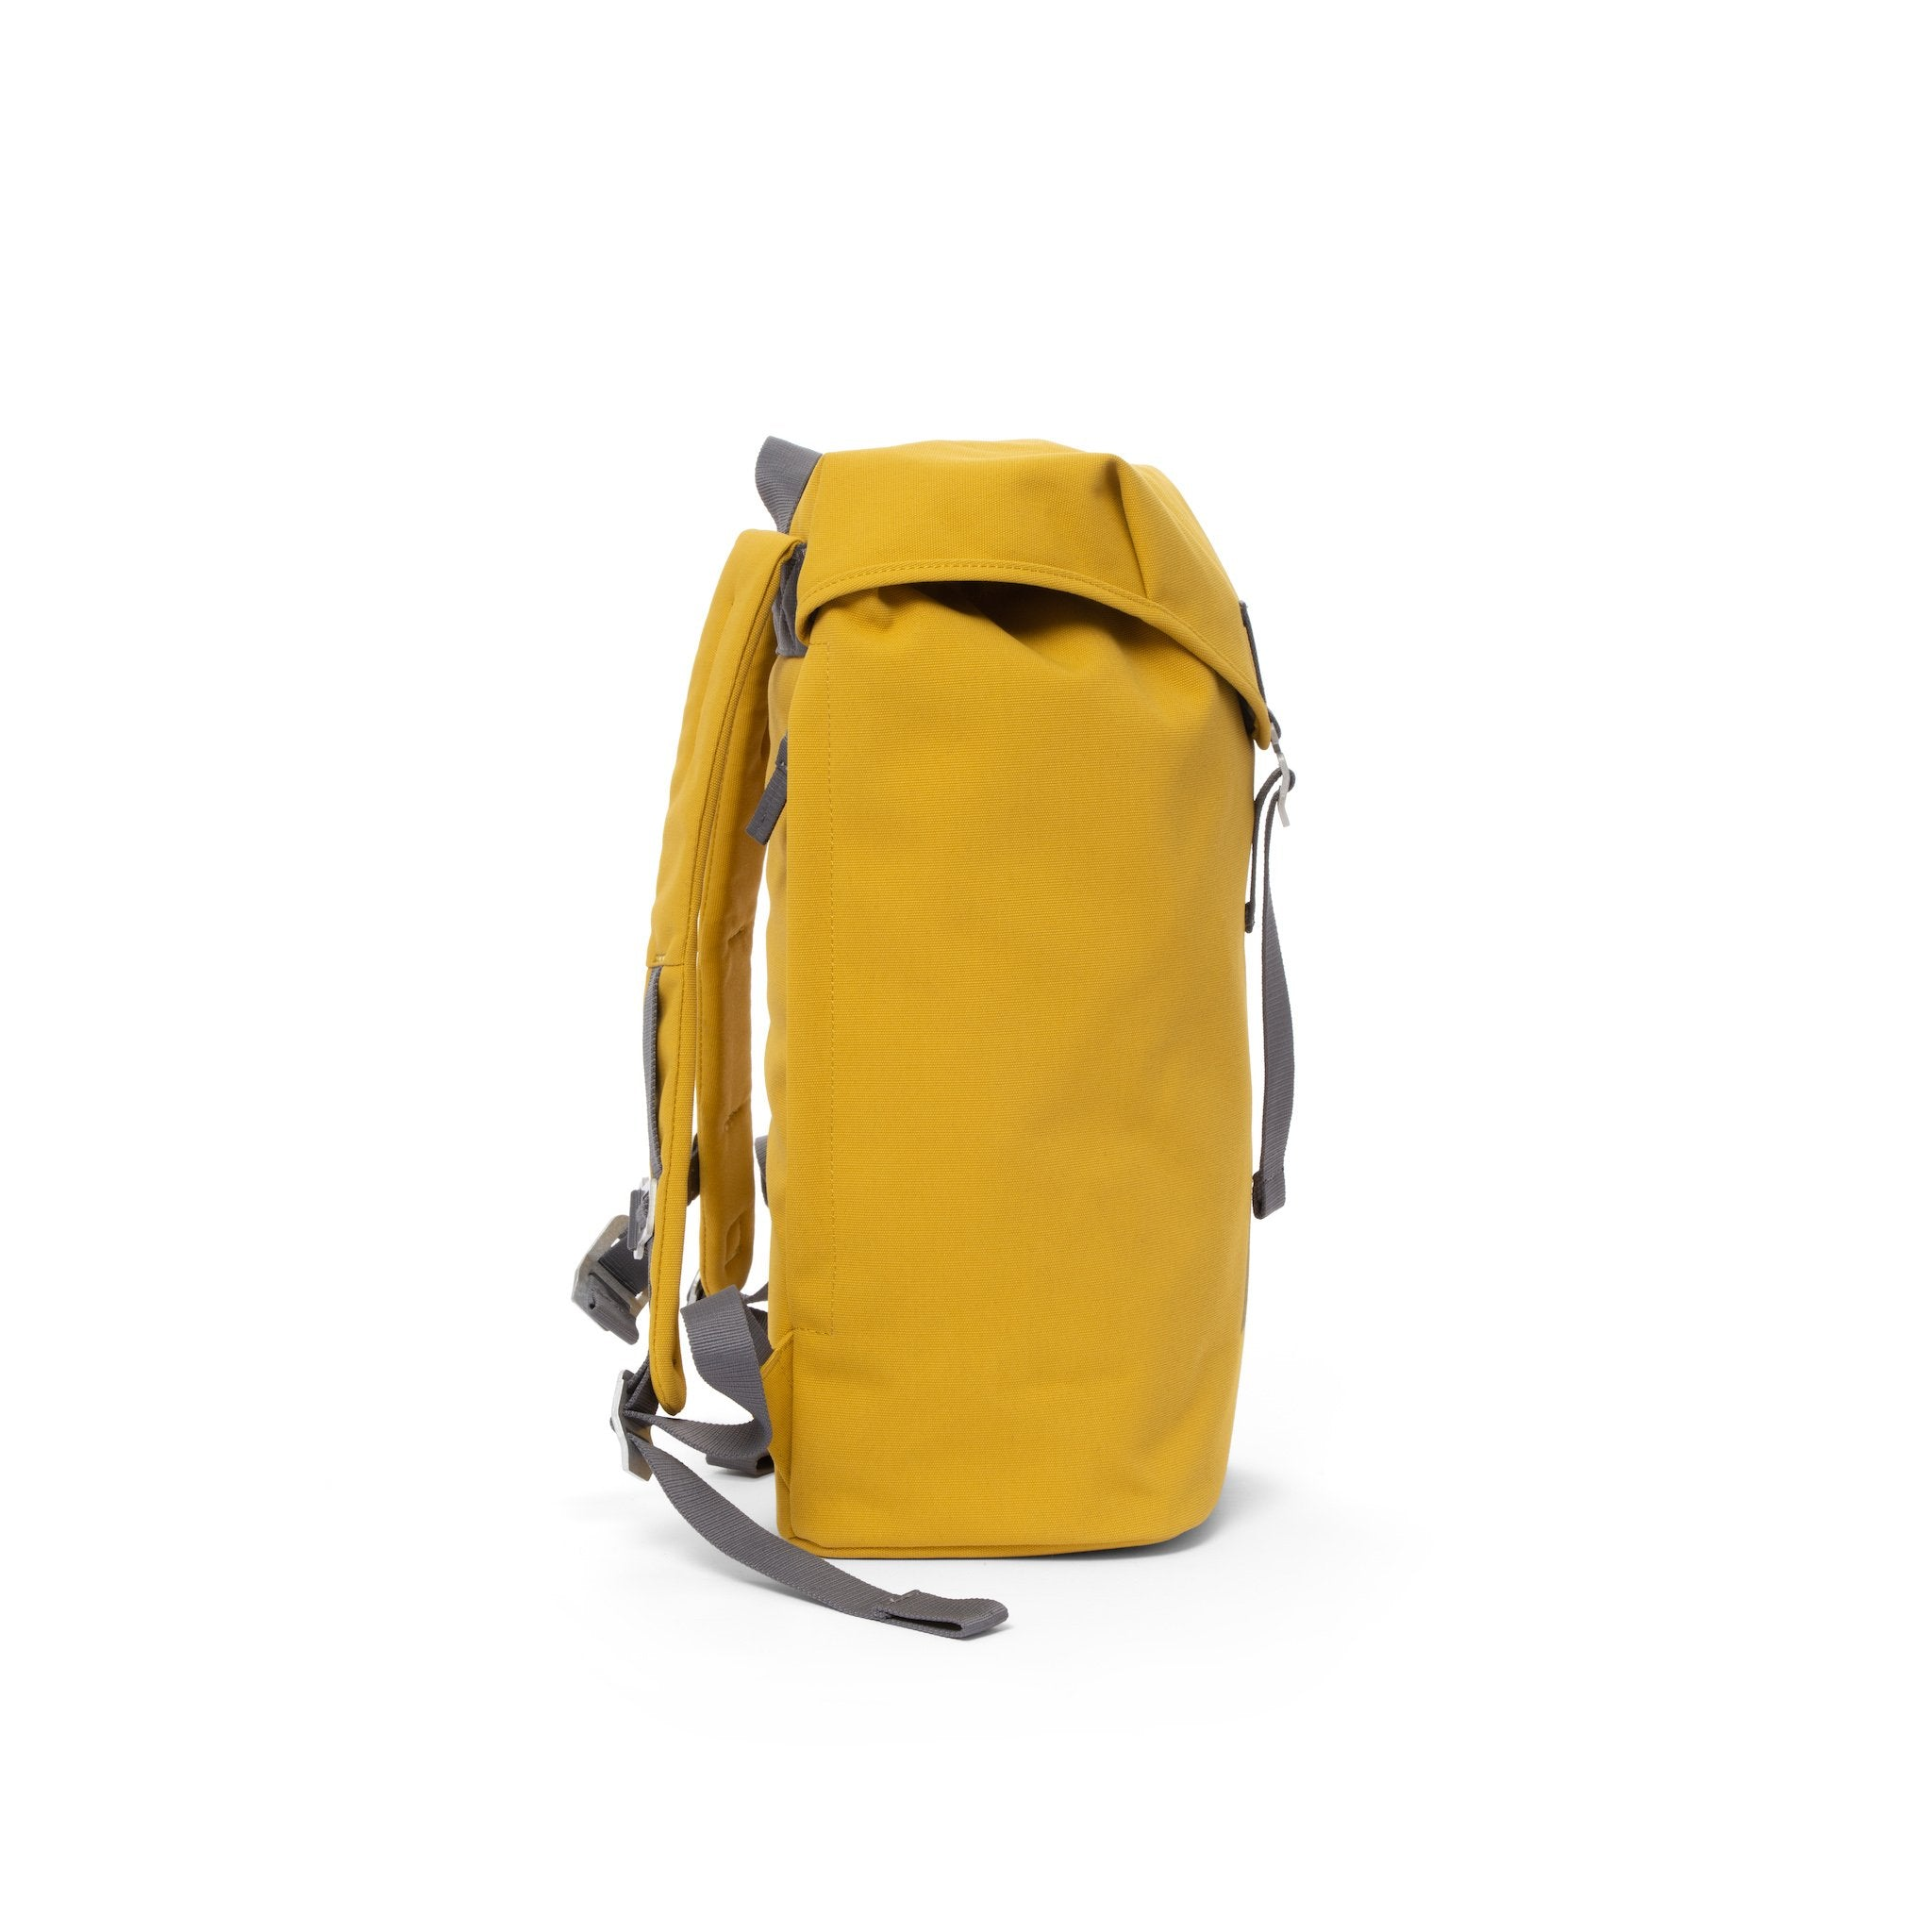 Yellow waterproof backpack with flap and metal buckle.